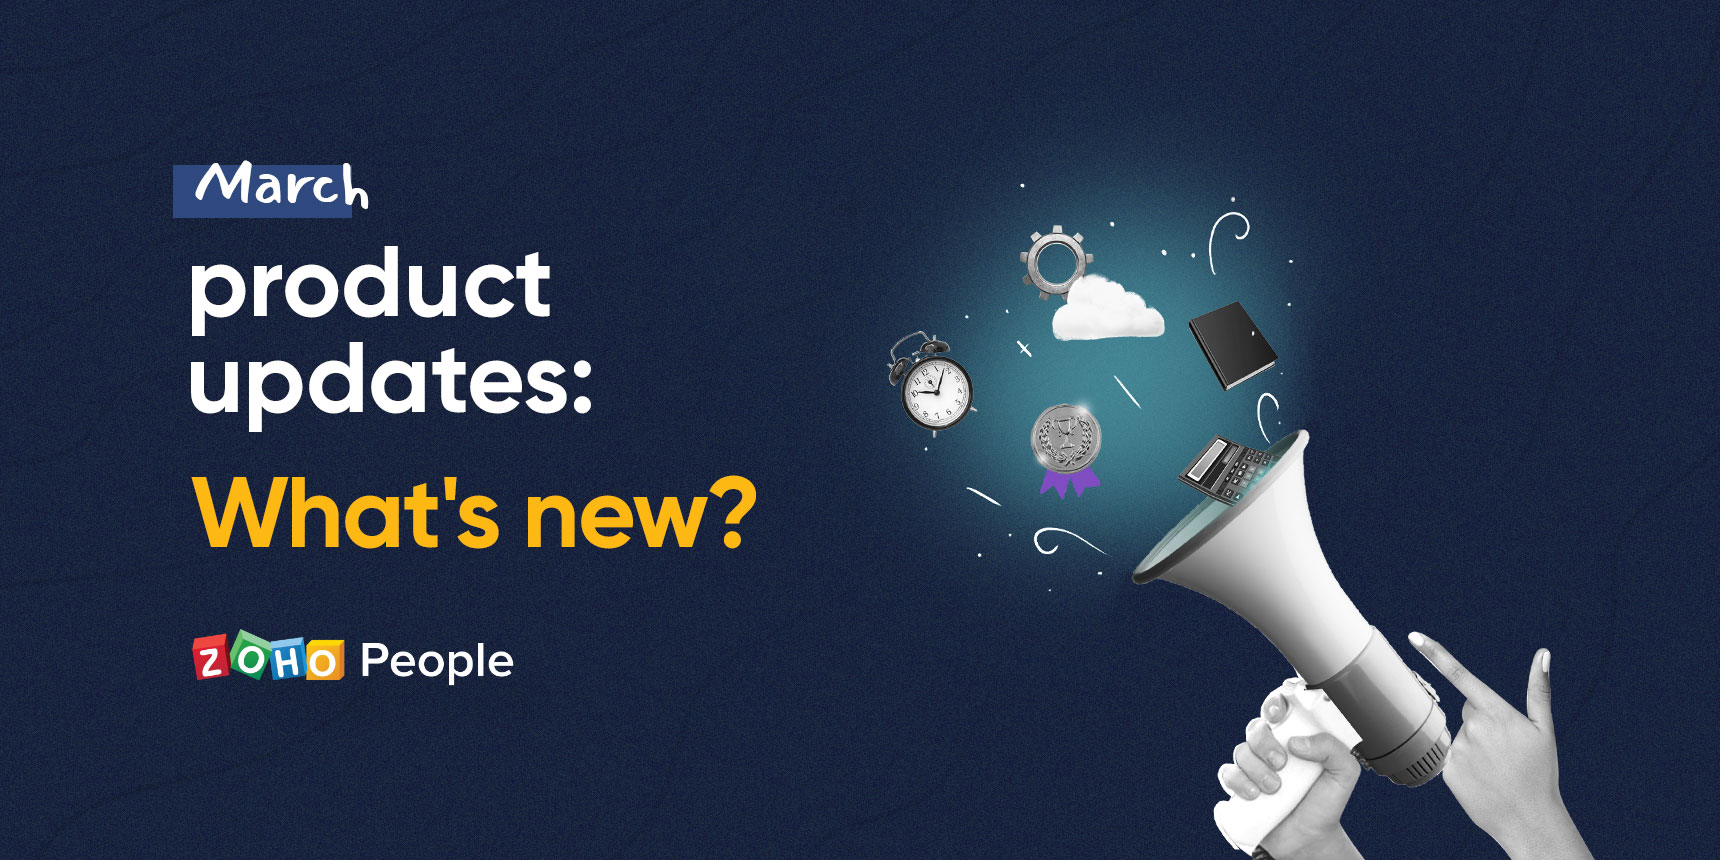 March product updates - Zoho People